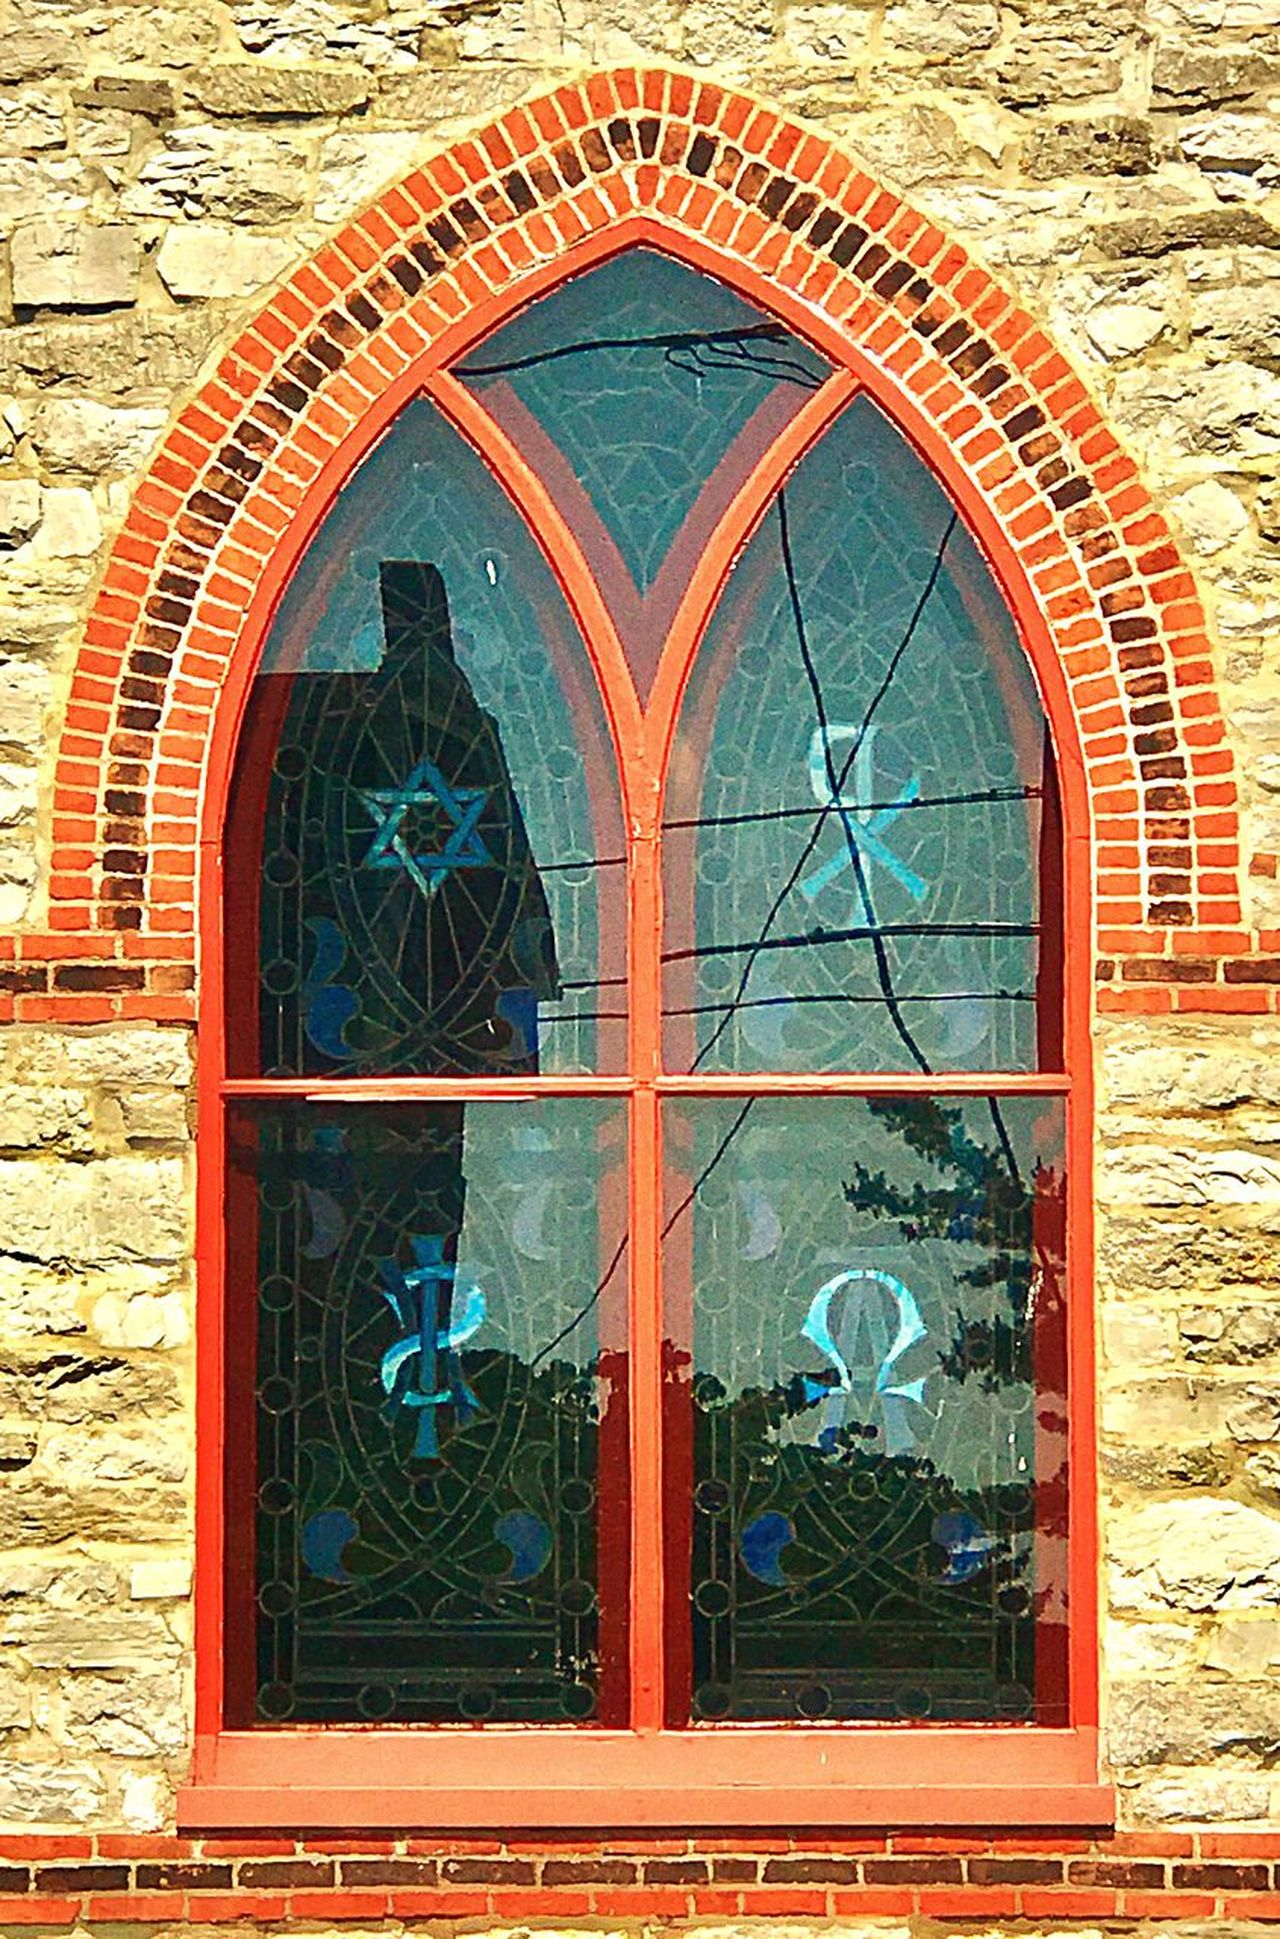 Place of Worship Window Architecture Window Built Structure No People Building Exterior Day Outdoors Place Of Worship Man Made Structure Close-up Brick Wall